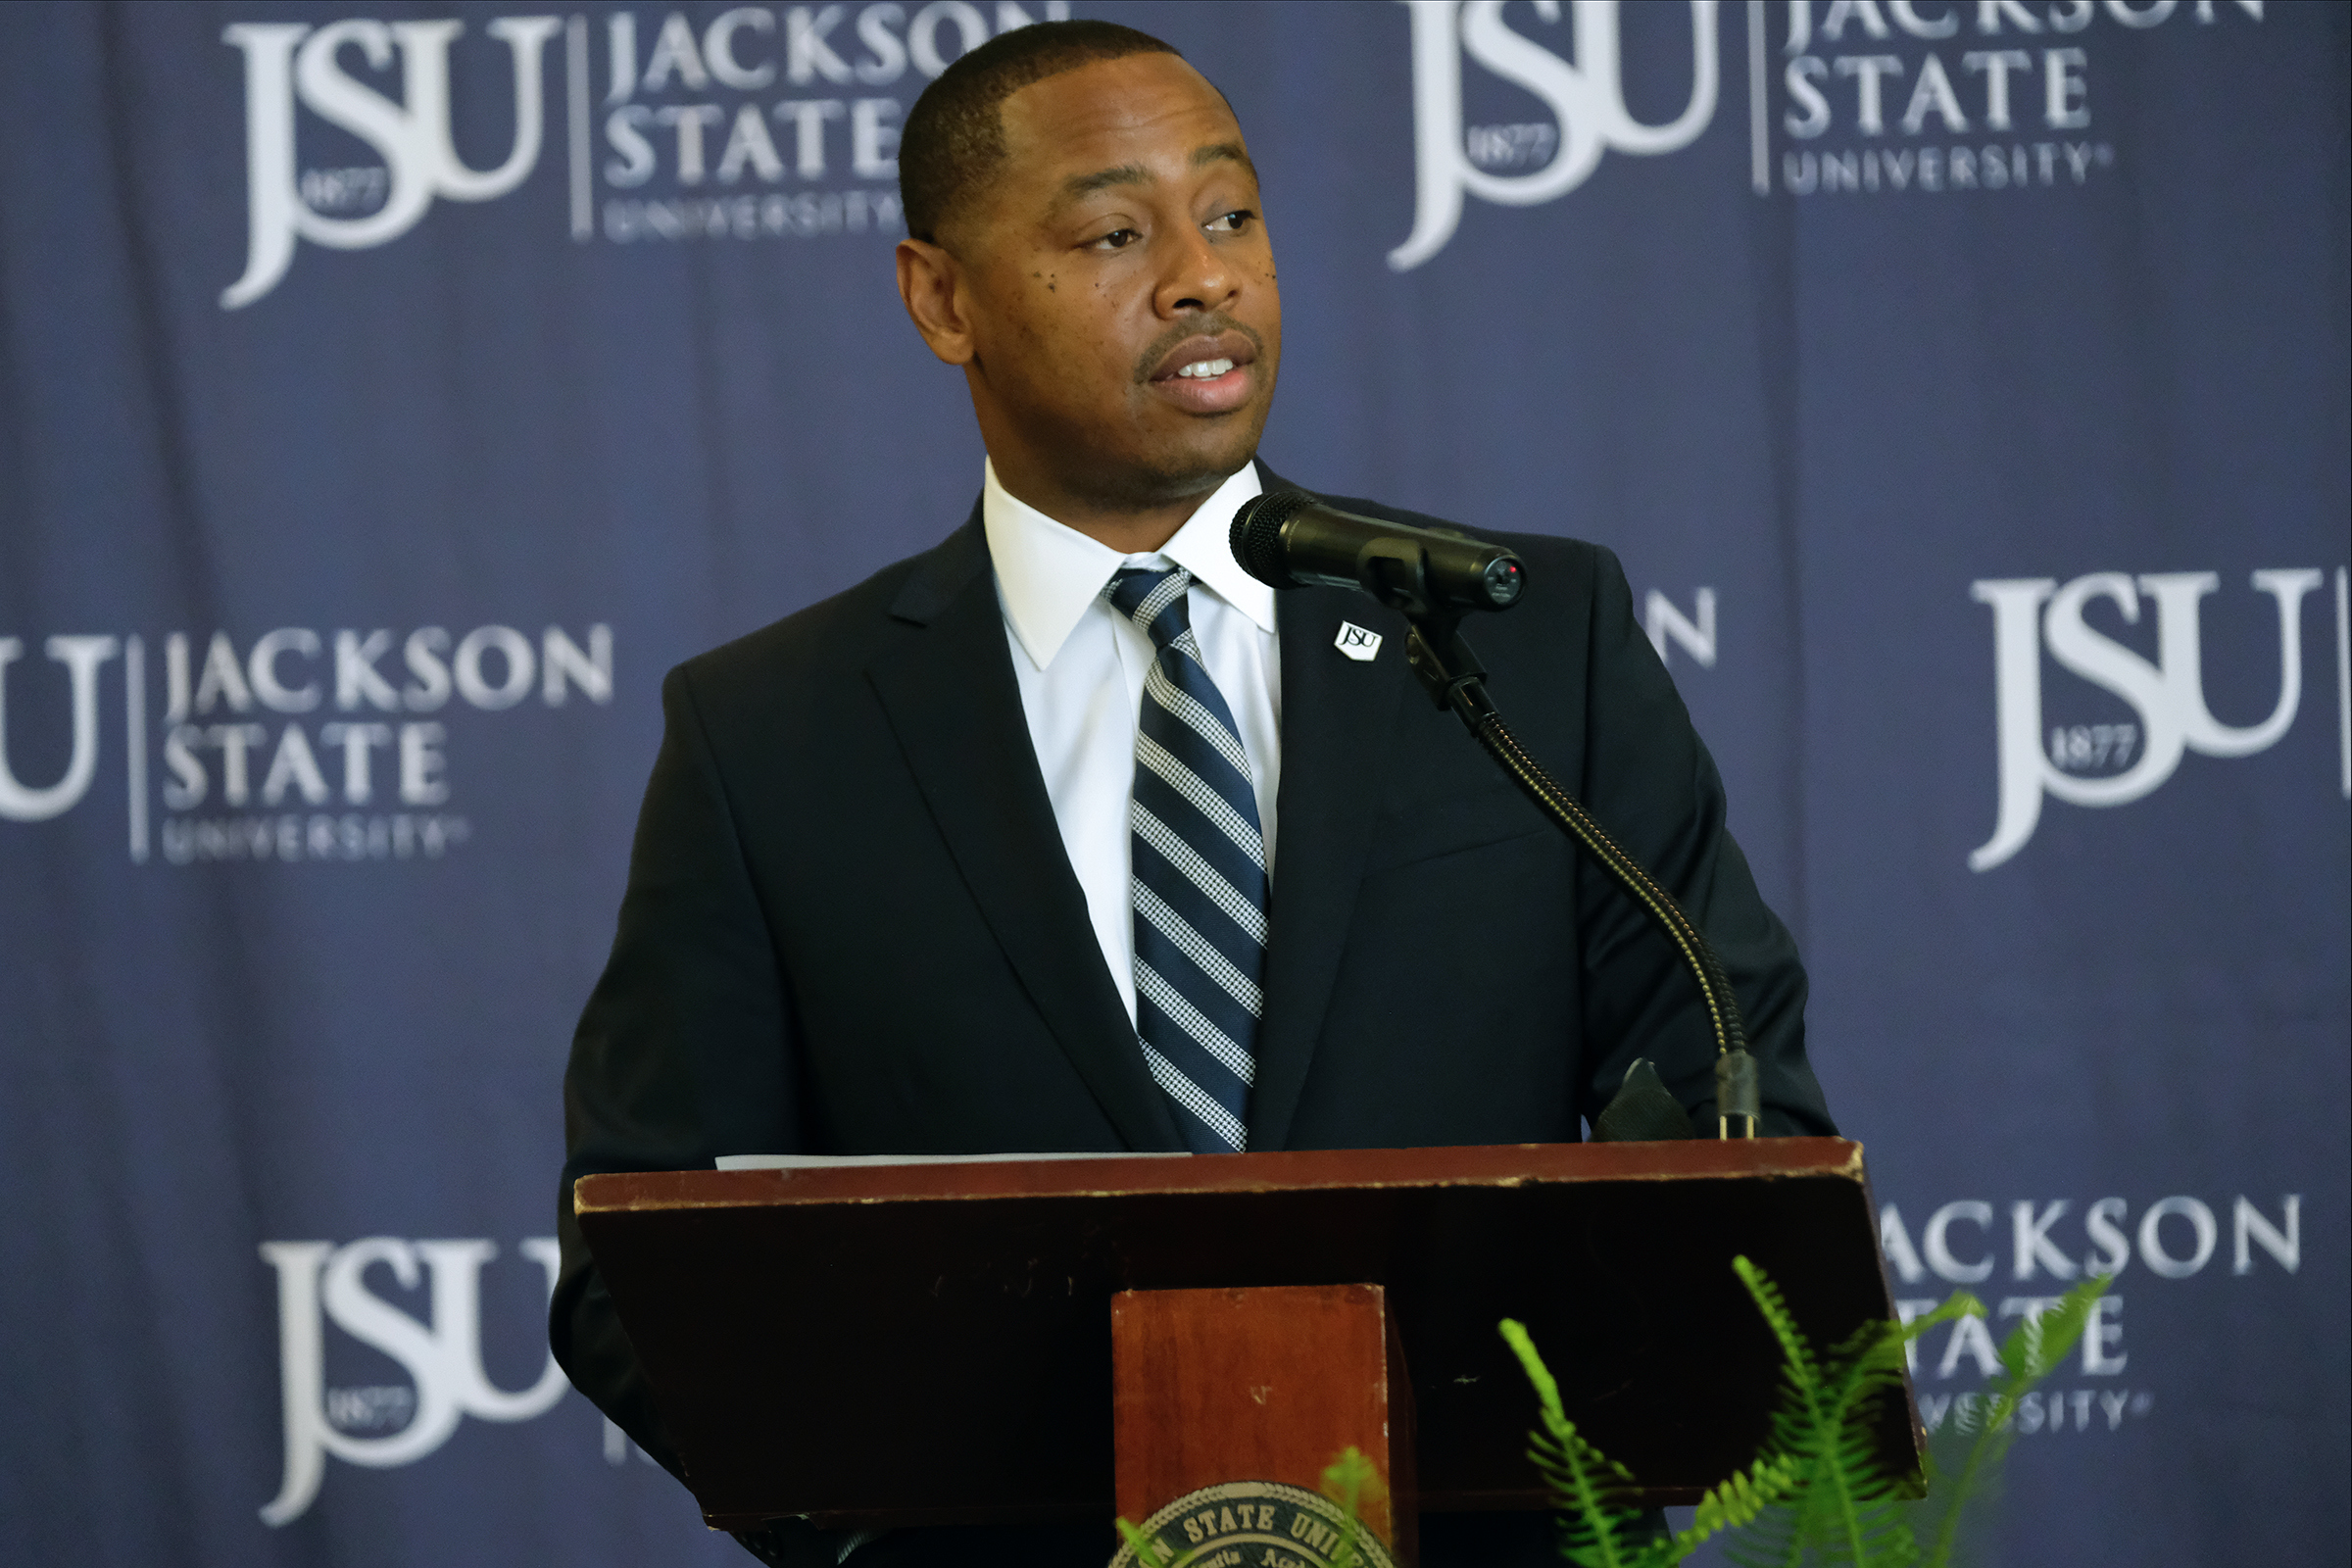 "Ashley Robinson officially will become JSU's newest vice president and athletic director on July 1. He said, ""Under my leadership, the Tigers will represent this institution, community and state in the spirit of excellence by restoring the pride of our students to be competitive."" (Photo by Charles A. Smith/JSU)"